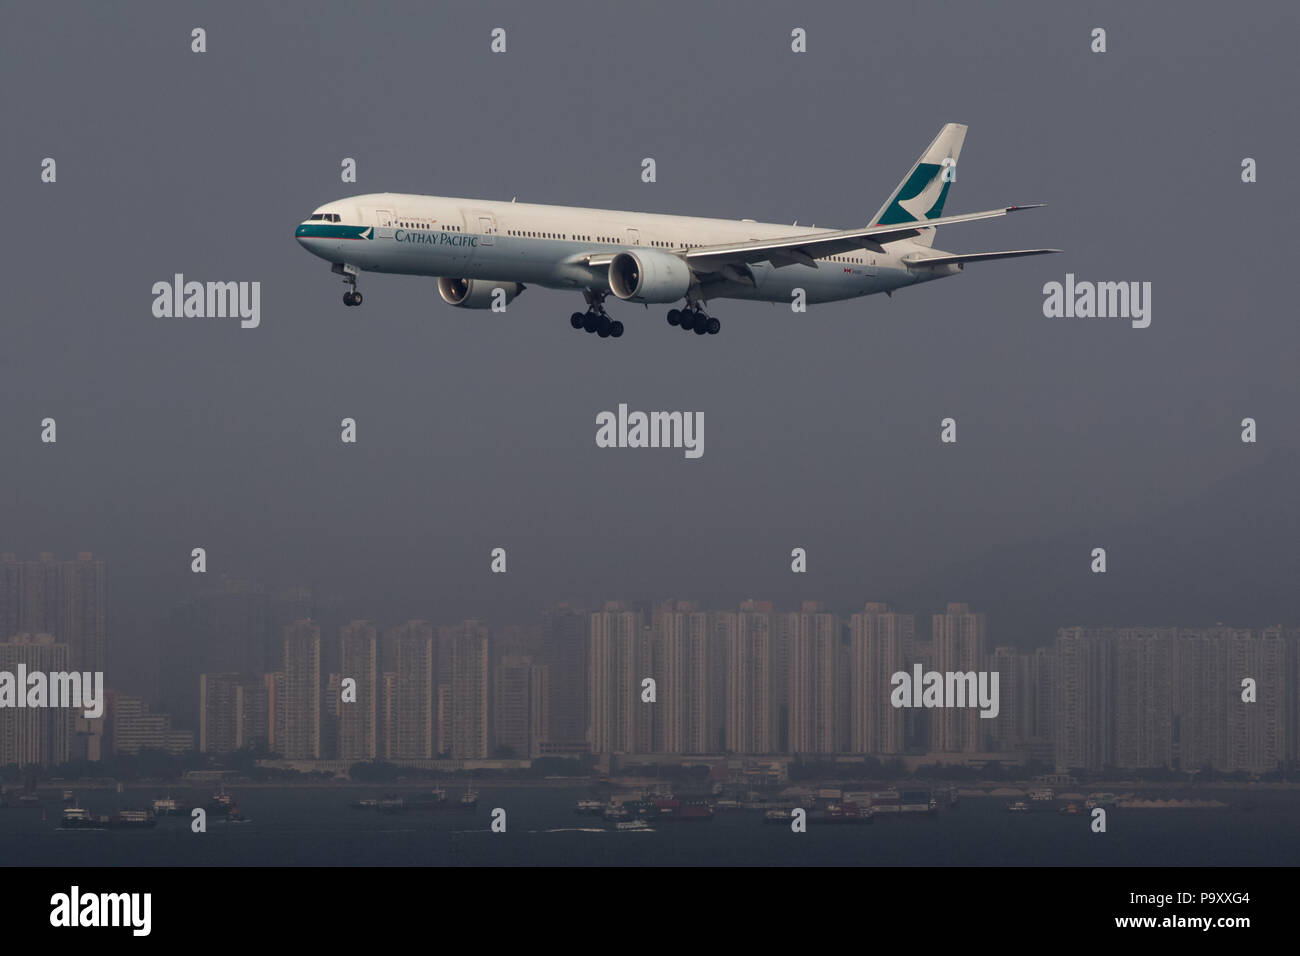 The Boeing 777-300ER widebody civil jet airplane of Cathay Pacific pictured approaching Chek Lap Kok airport, Hong Kong, China - Stock Image